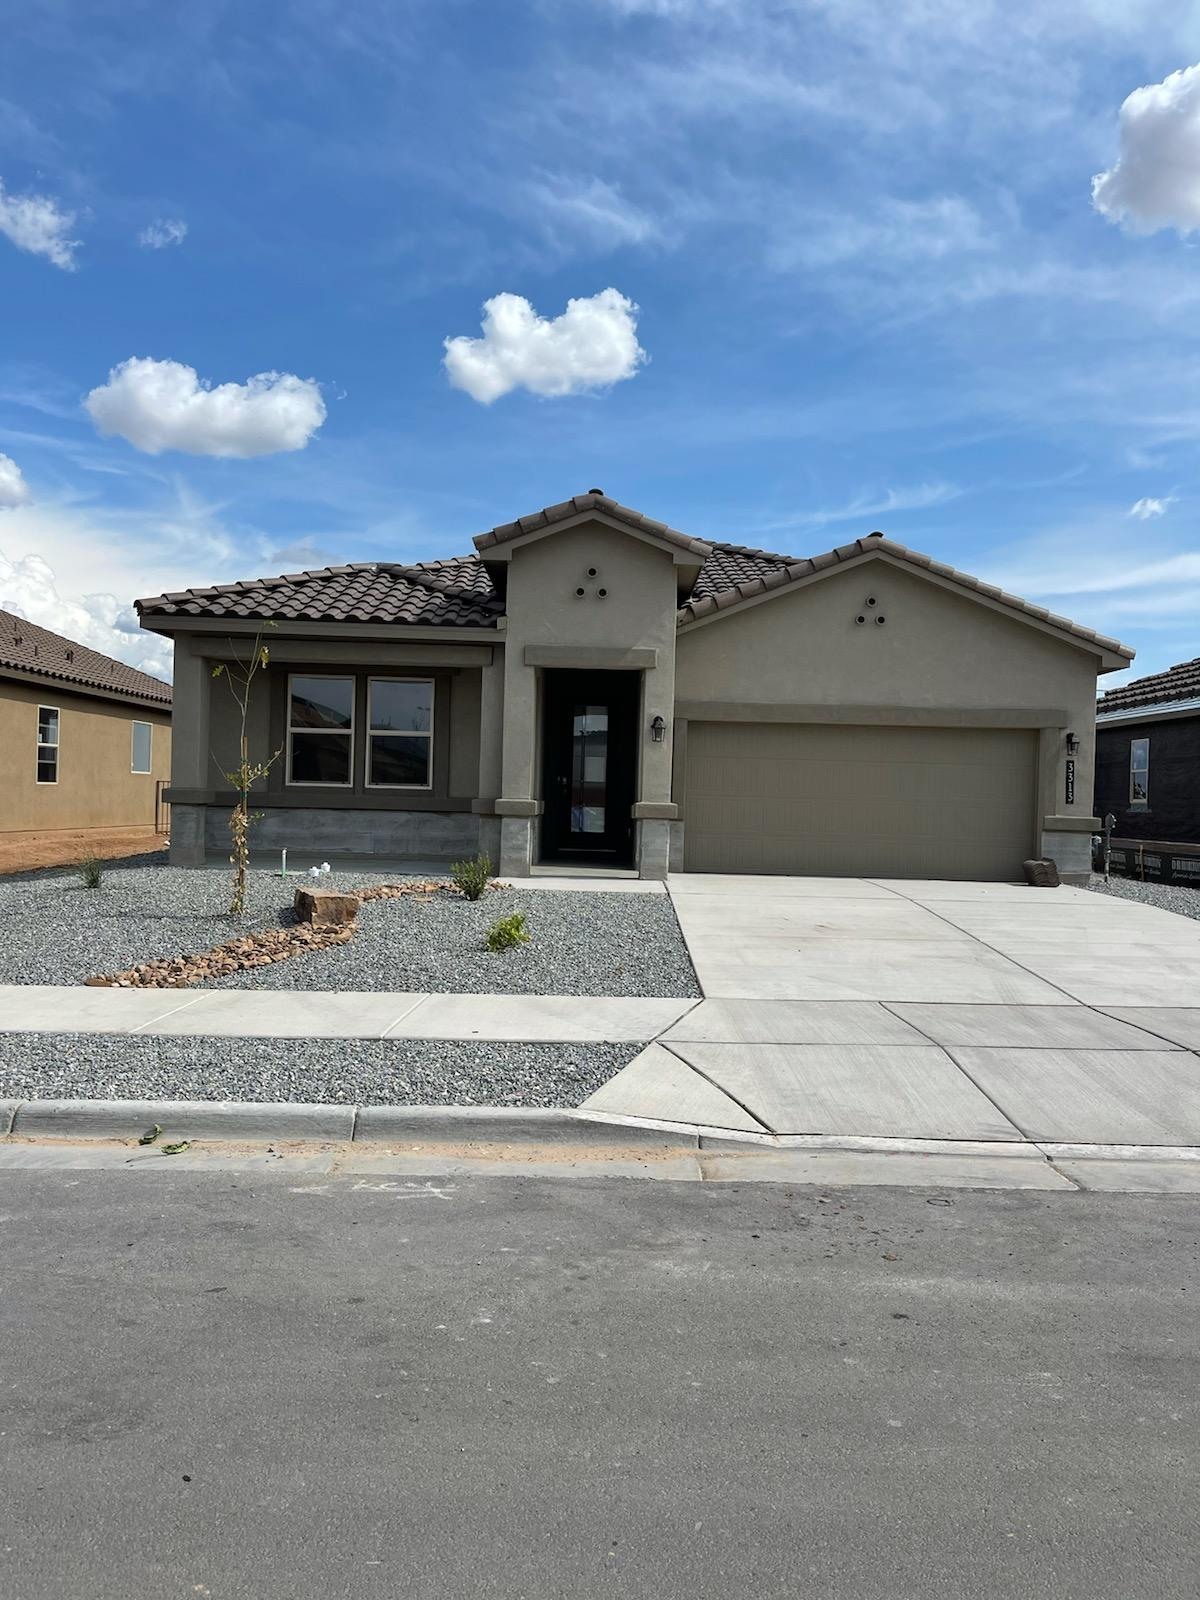 This is a beautiful 4 bed 2 bath home.Open living room with fireplace and gourmet kitchen with granite countertops! Ceramic tile throughout, carpet in bedrooms. Large primary suite with dual sinks in primary bath and huge walk in closet. HOME IS UNDER CONSTRUCTION EST. TIME OF COMPLETION AUGUST 2021.